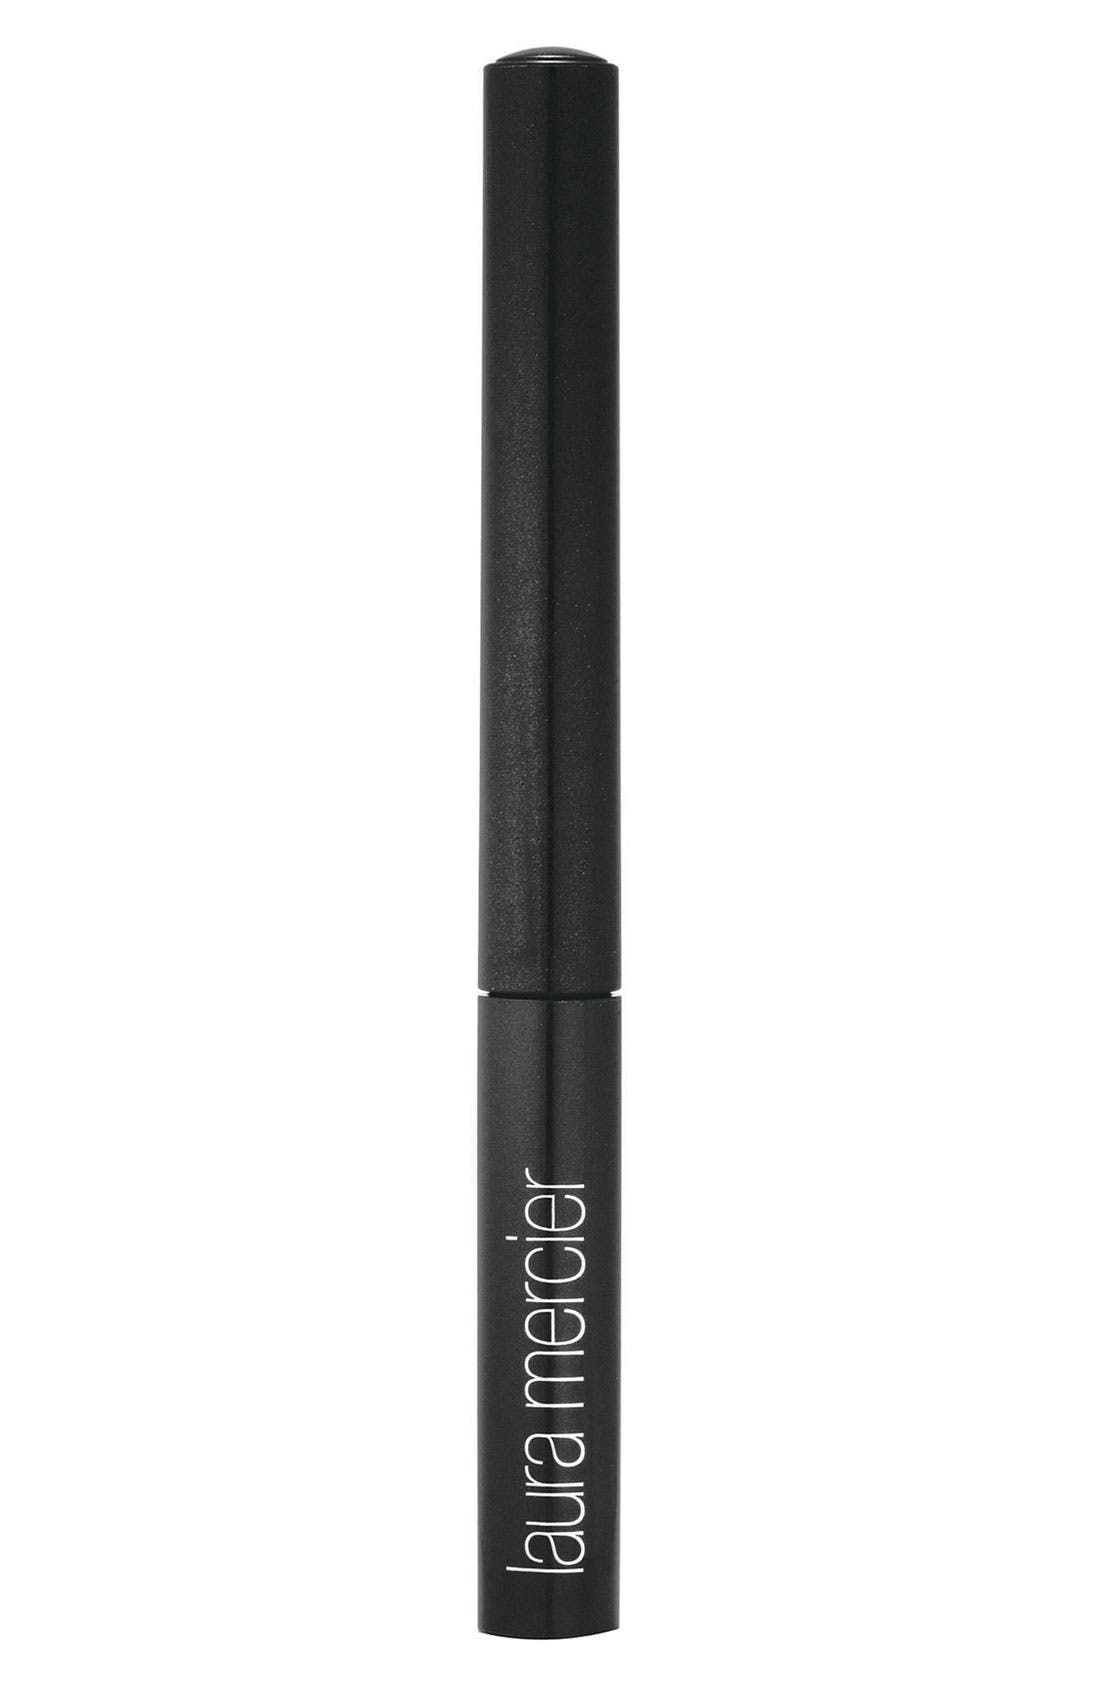 LAURA MERCIER 'Art Deco Muse Collection' Graphic Liquid Eyeliner, Main, color, 001